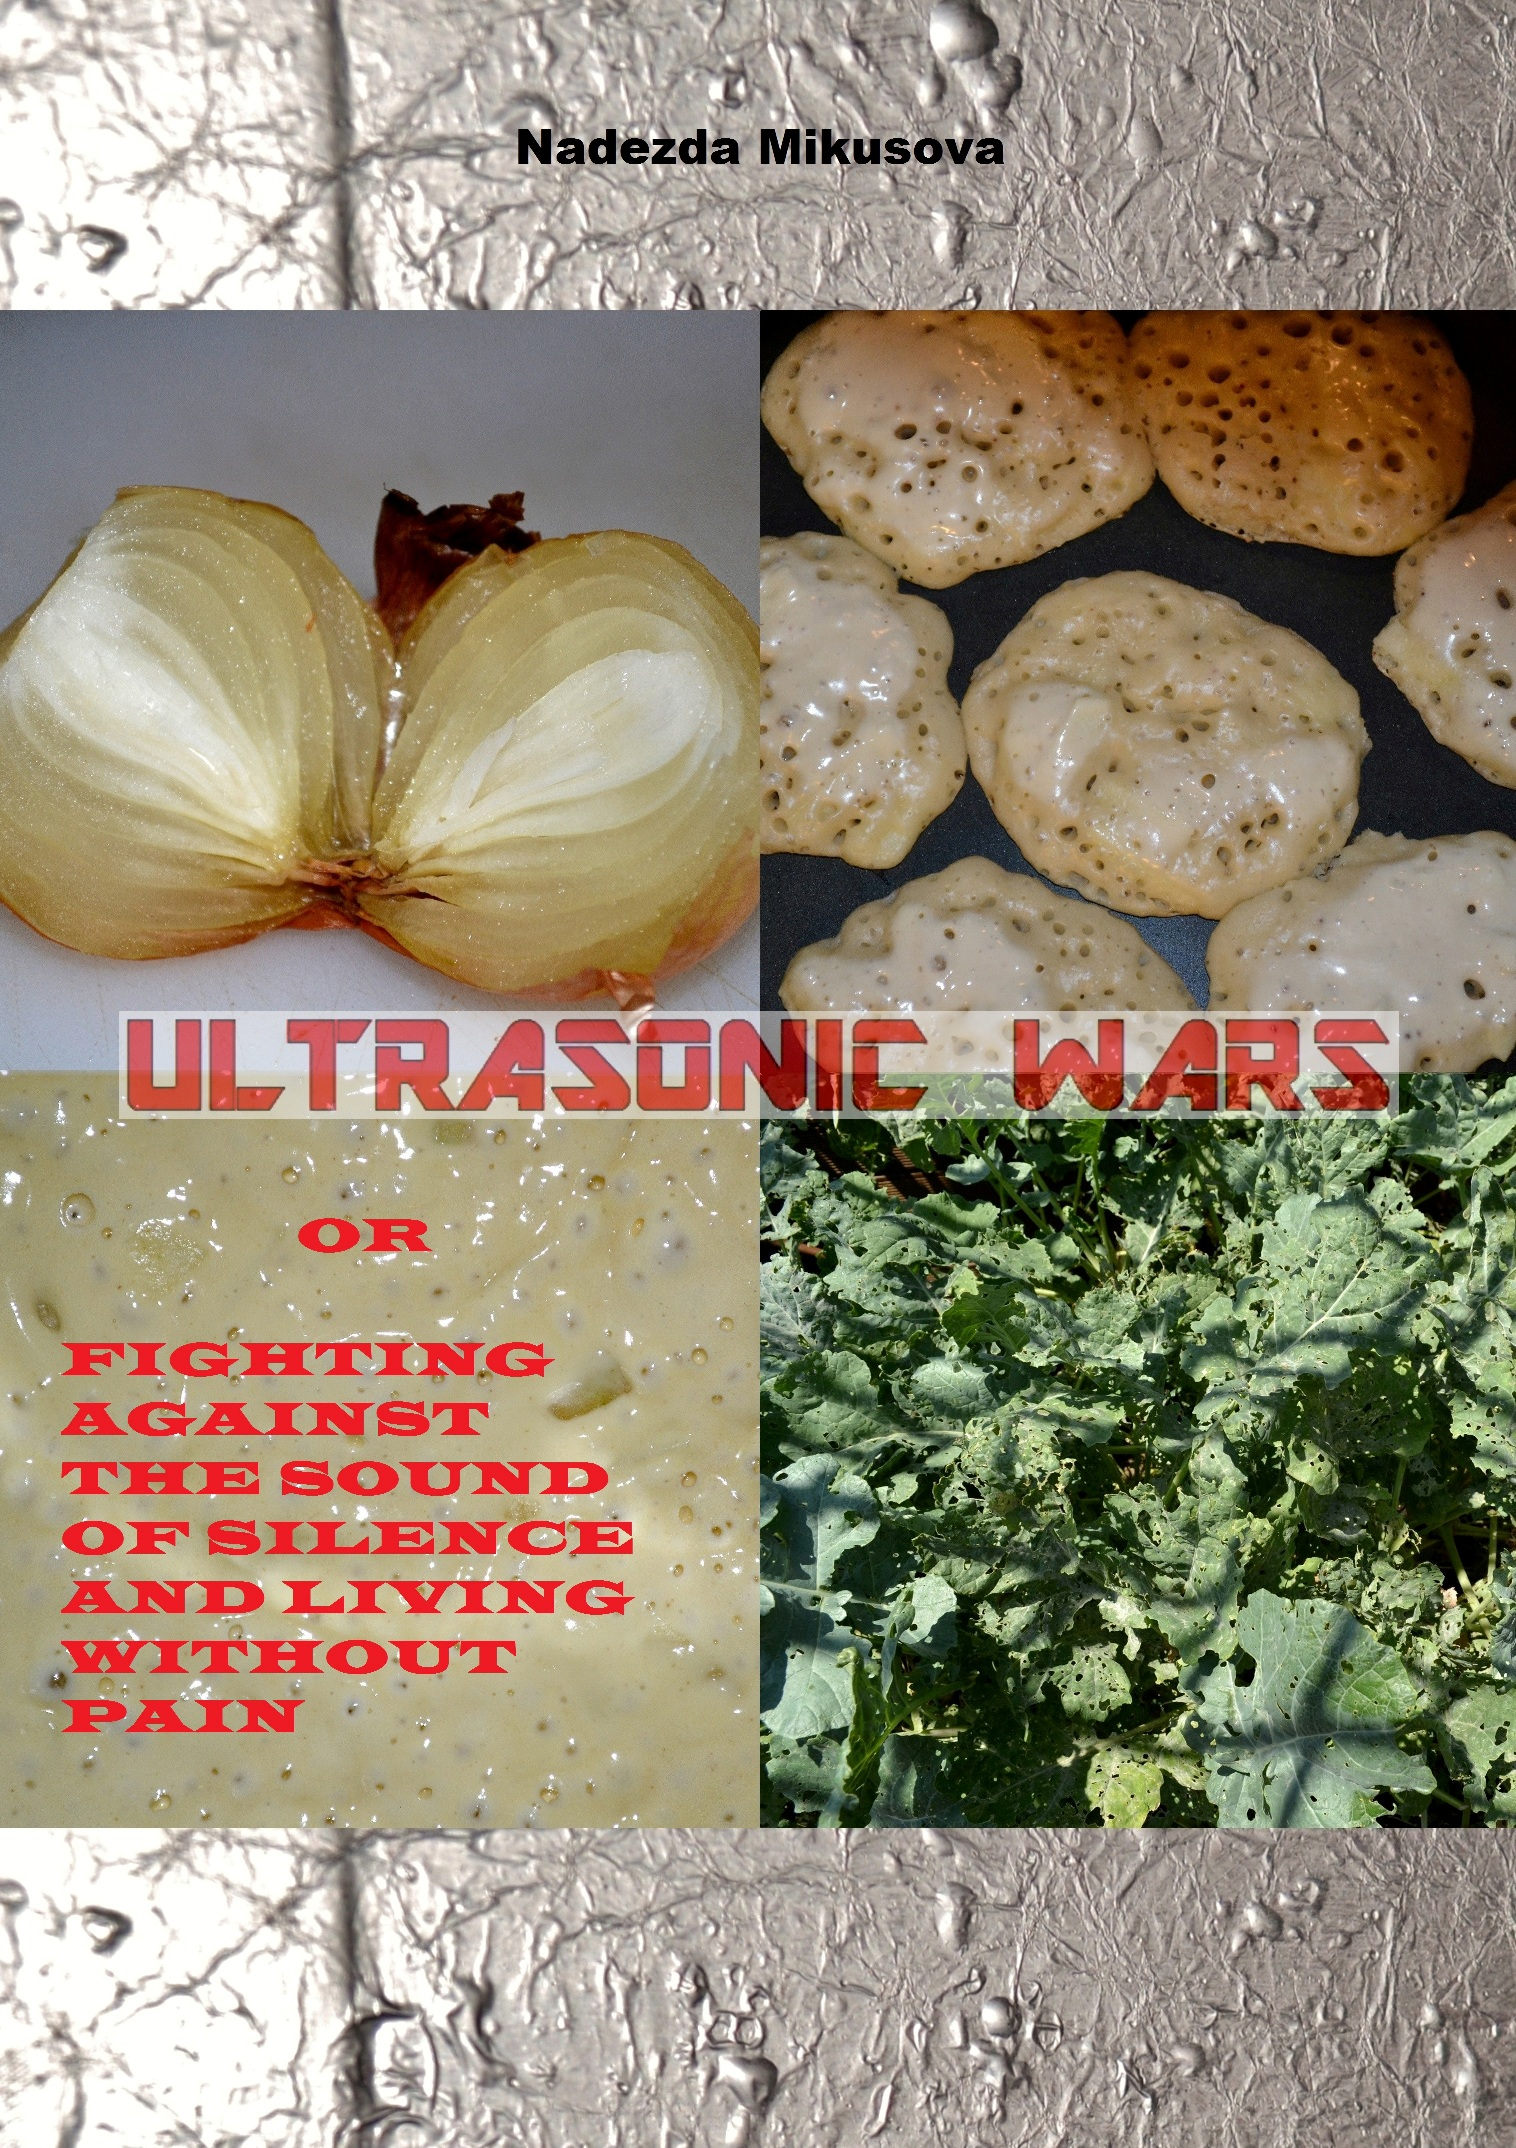 Ultrasonic Wars Or Fighting Against the Sound of Silence And Living Without Pain